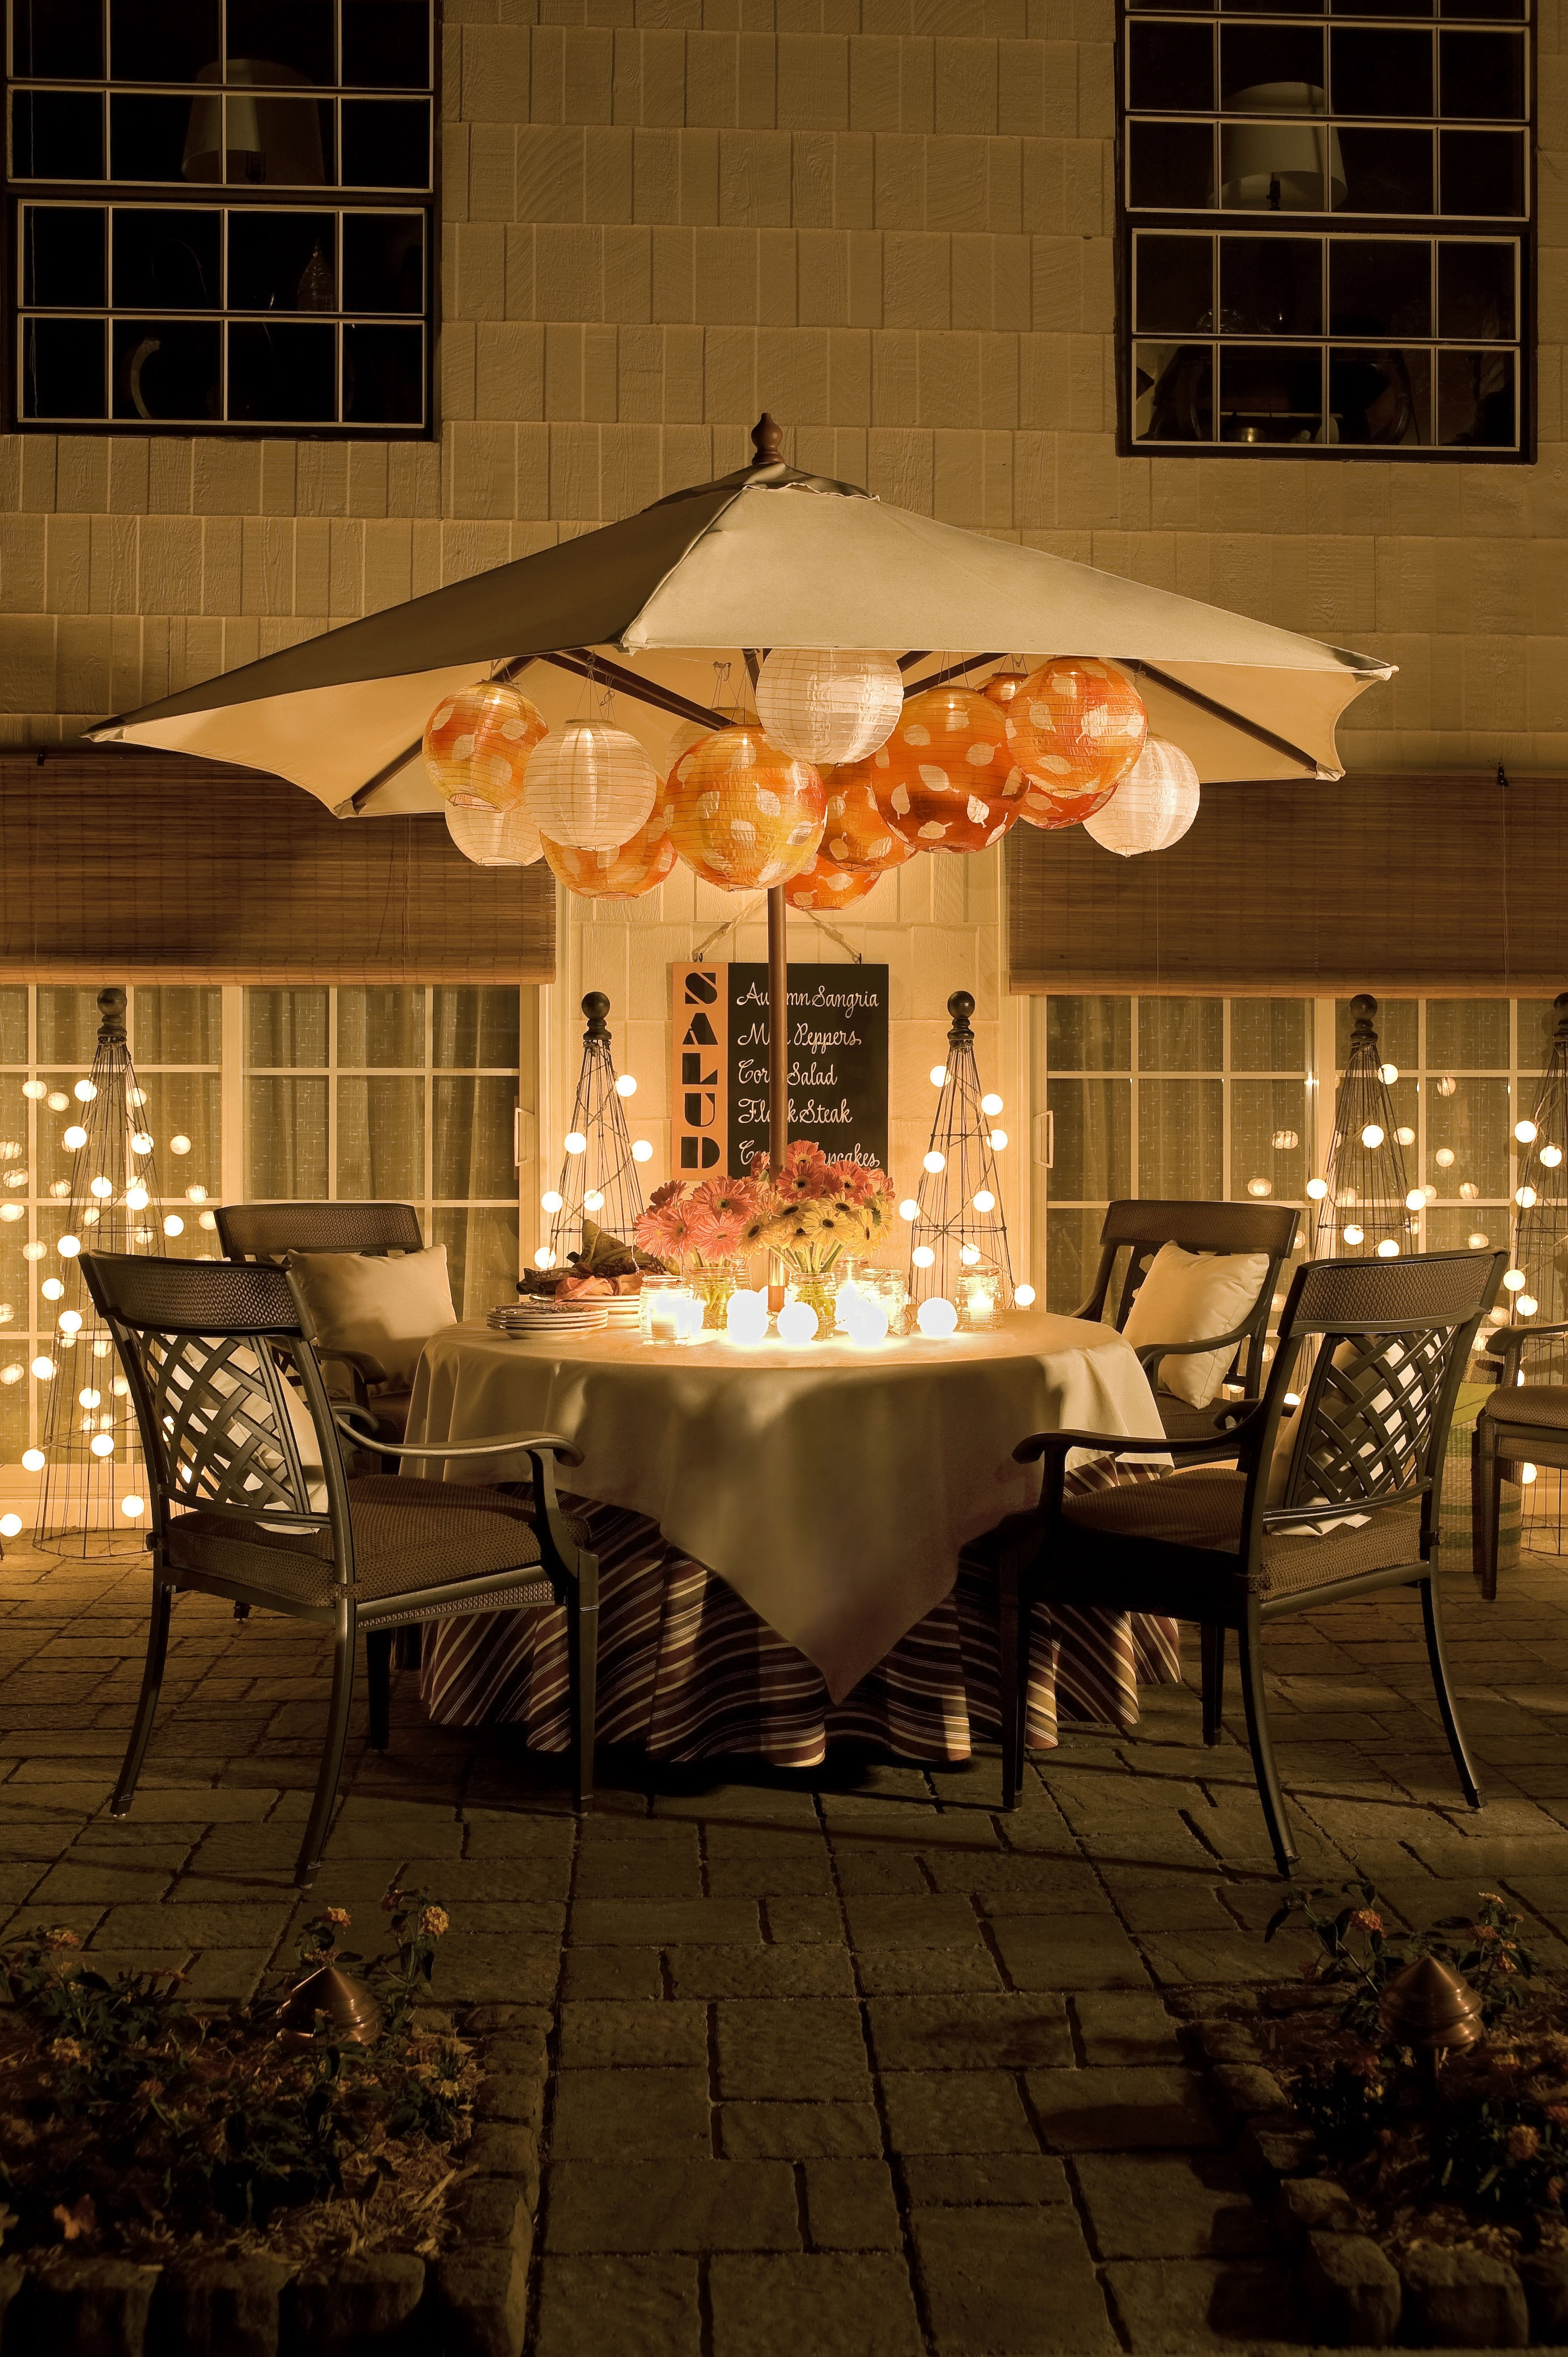 Mexican Patio Lights Awesome Lamp Patio Ideas String Patio Lights with regard to Outdoor Mexican Lanterns (Image 14 of 20)